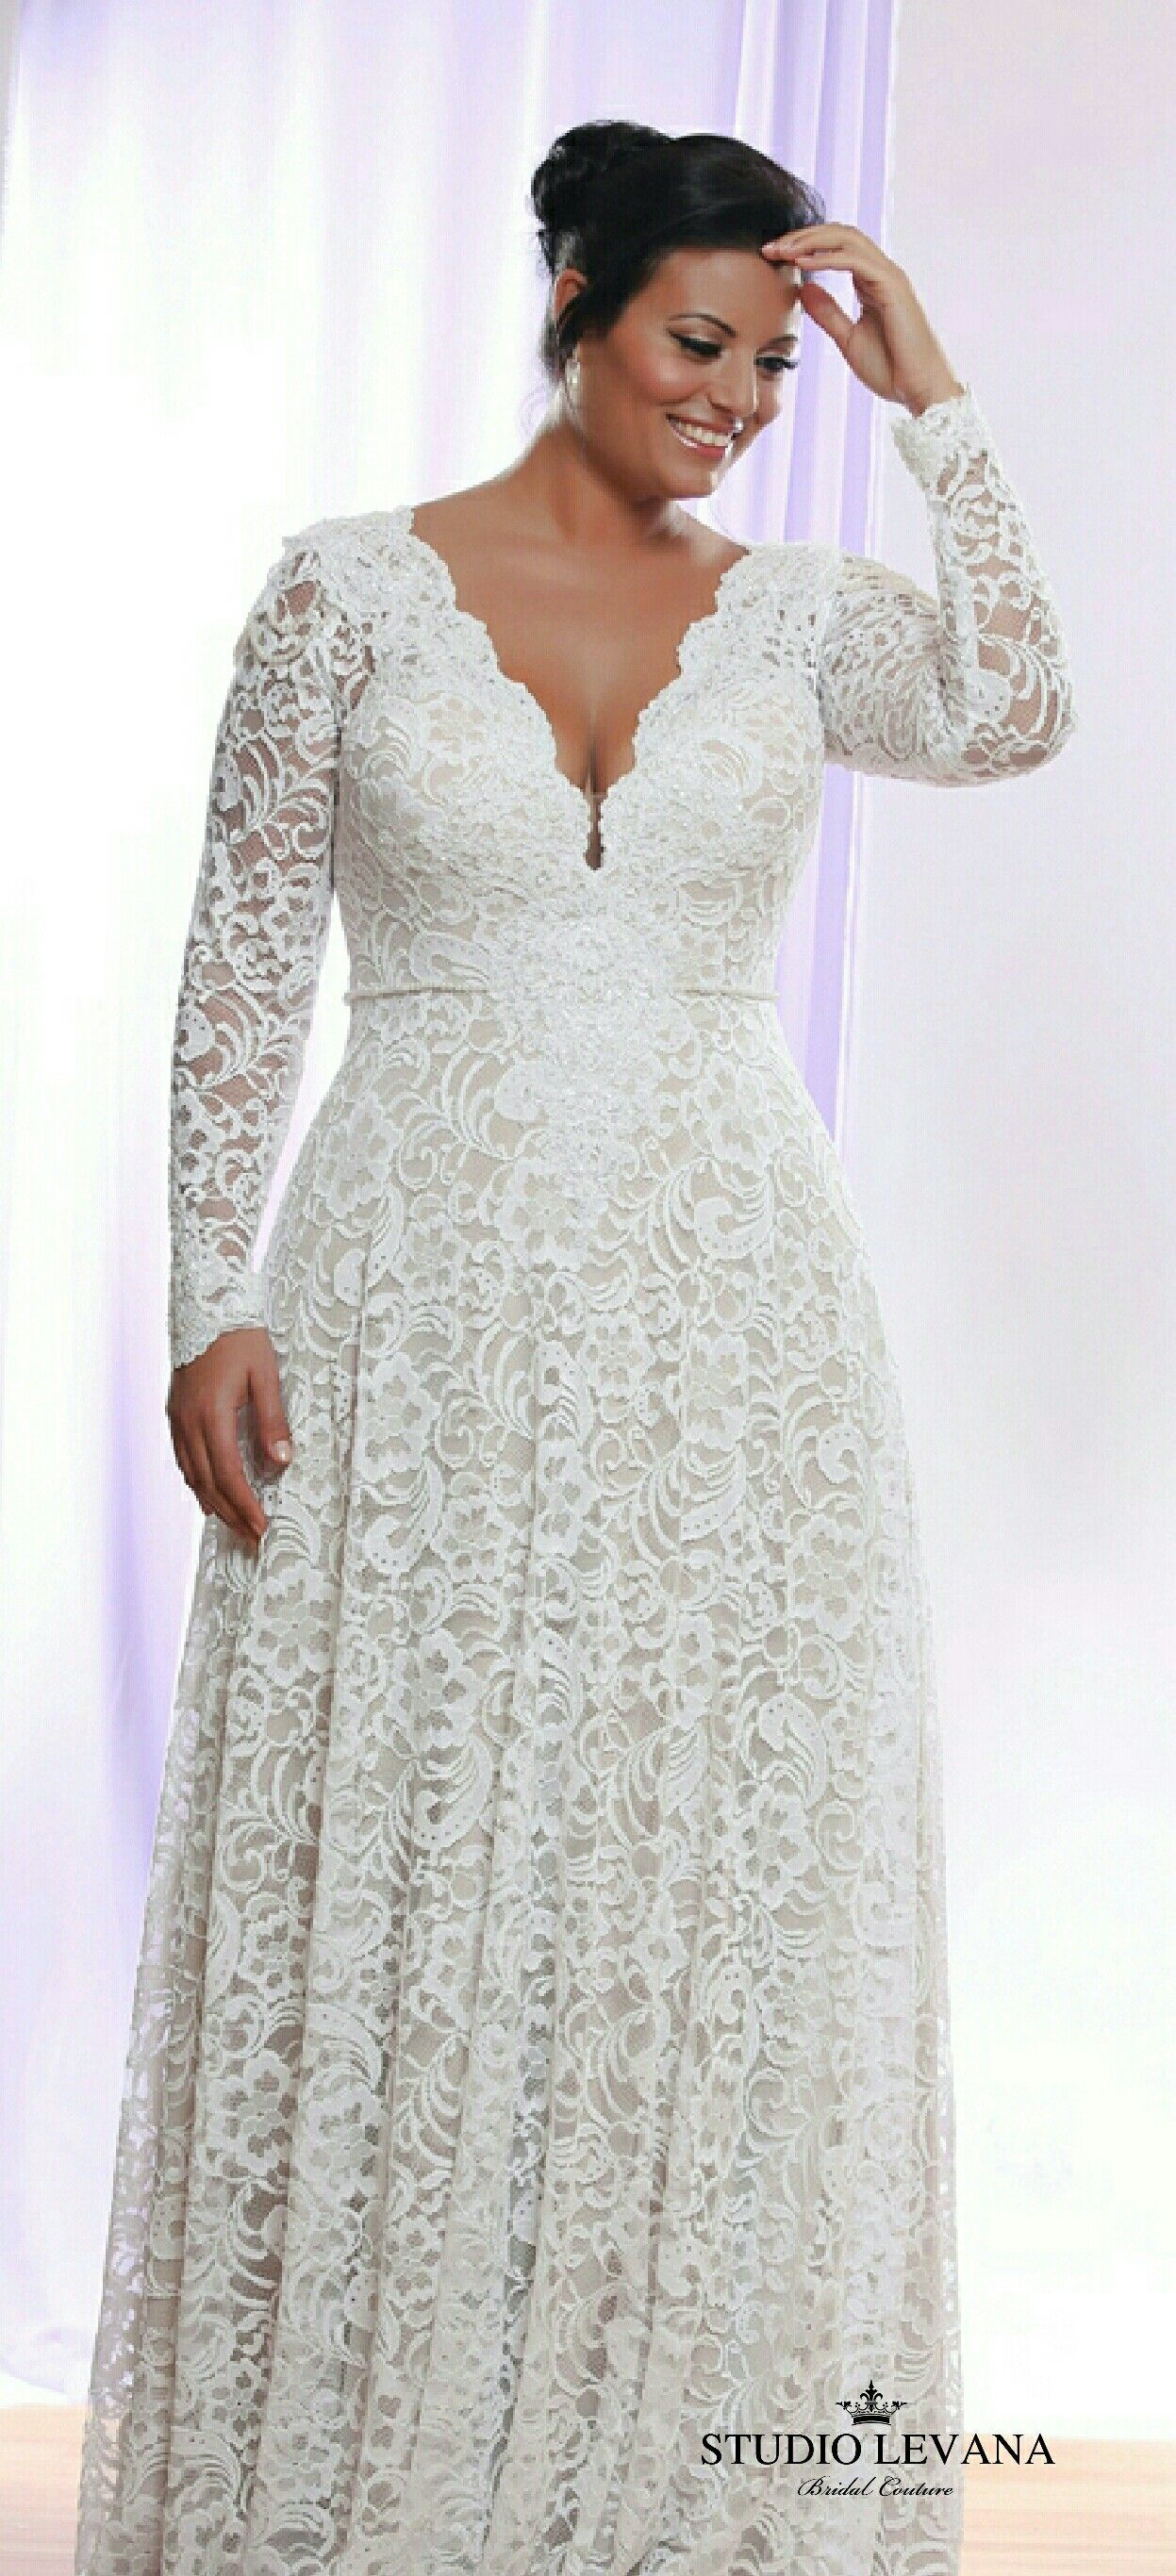 a7b6a92548 Plus size lace corset wedding gown with long sleeves and the most  flattering shape. Signature creation from Studio Levana. Prada wedding gown.